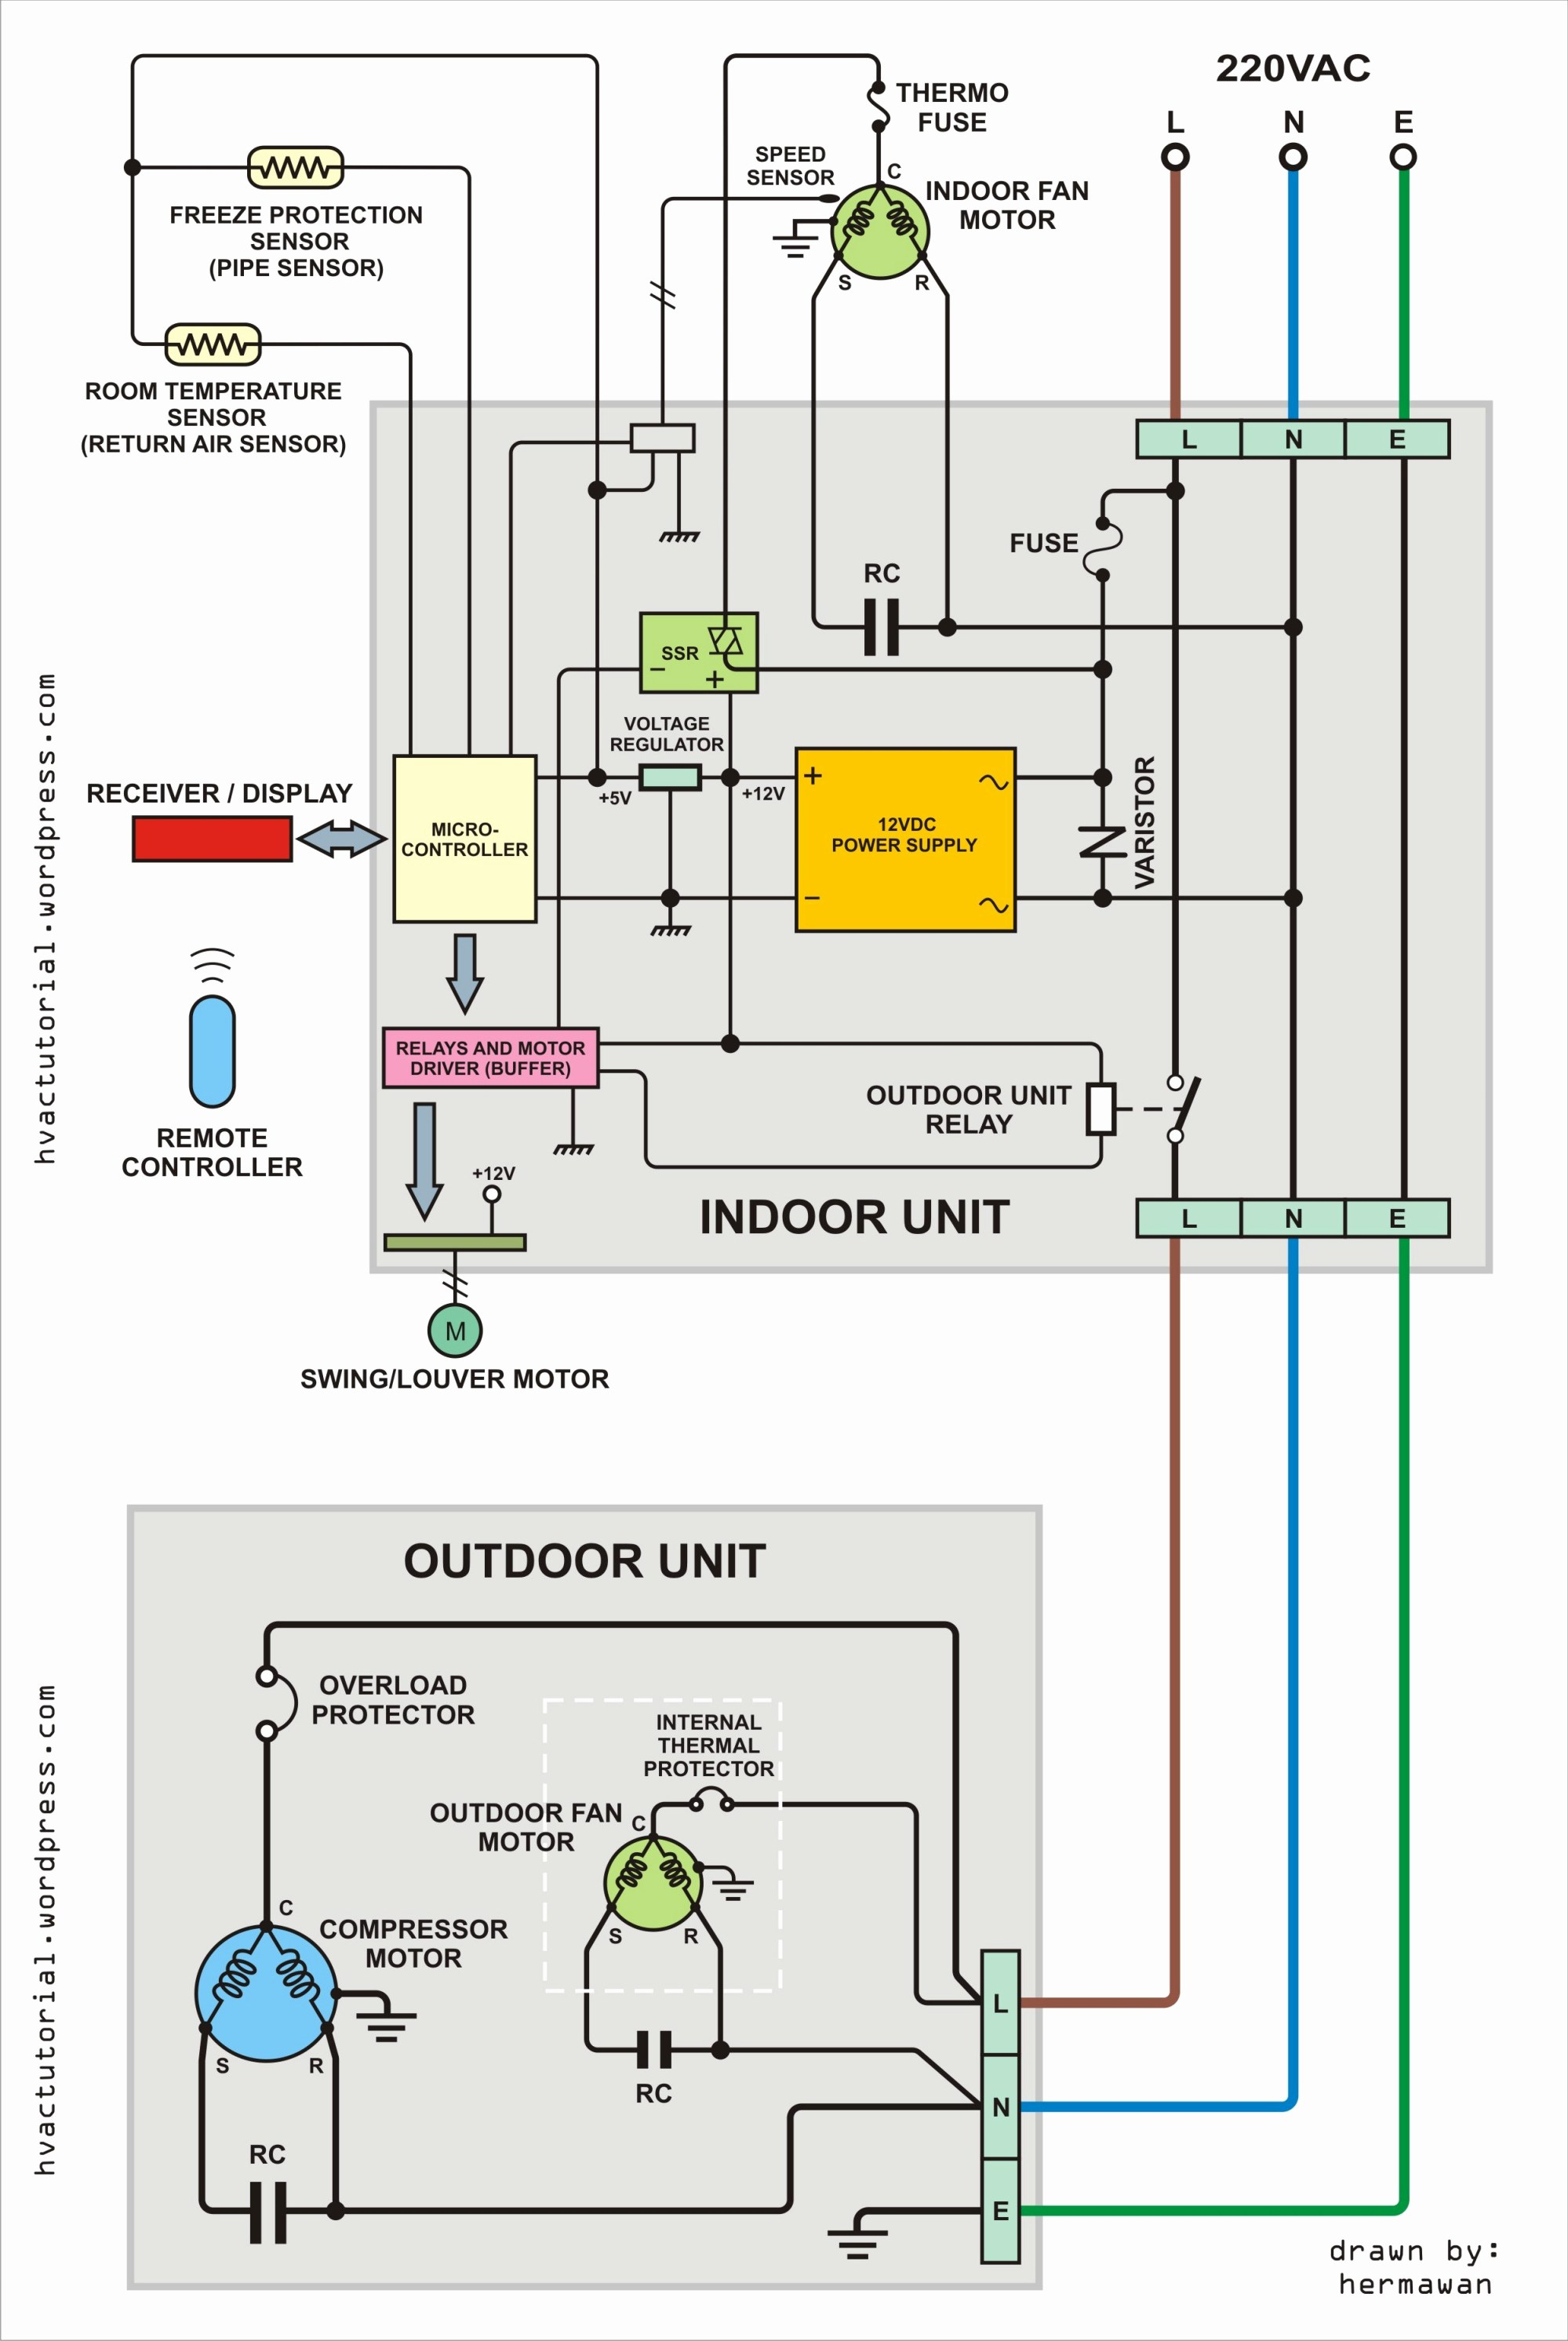 hight resolution of forest river mb wiring diagram wiring diagram detailed 97 chevy wiring diagram forest river mb wiring diagram source 2006 wildcat camper